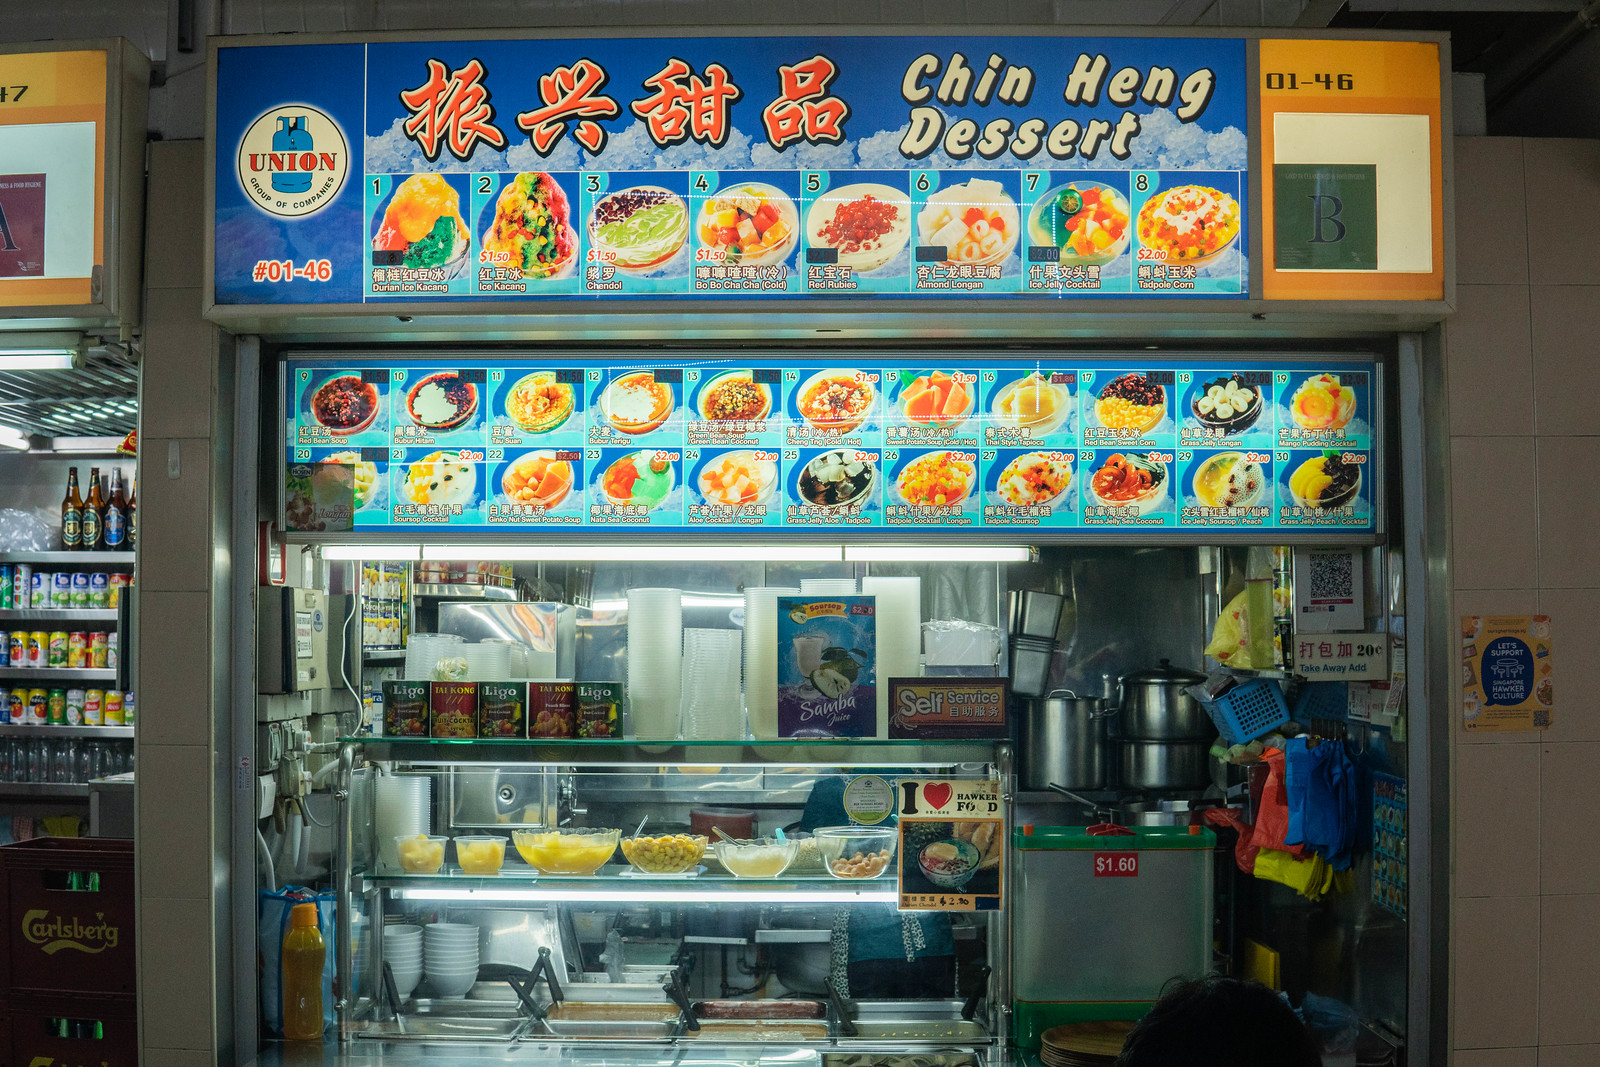 Store front of Chin Heng Desserts at Haig Road Market